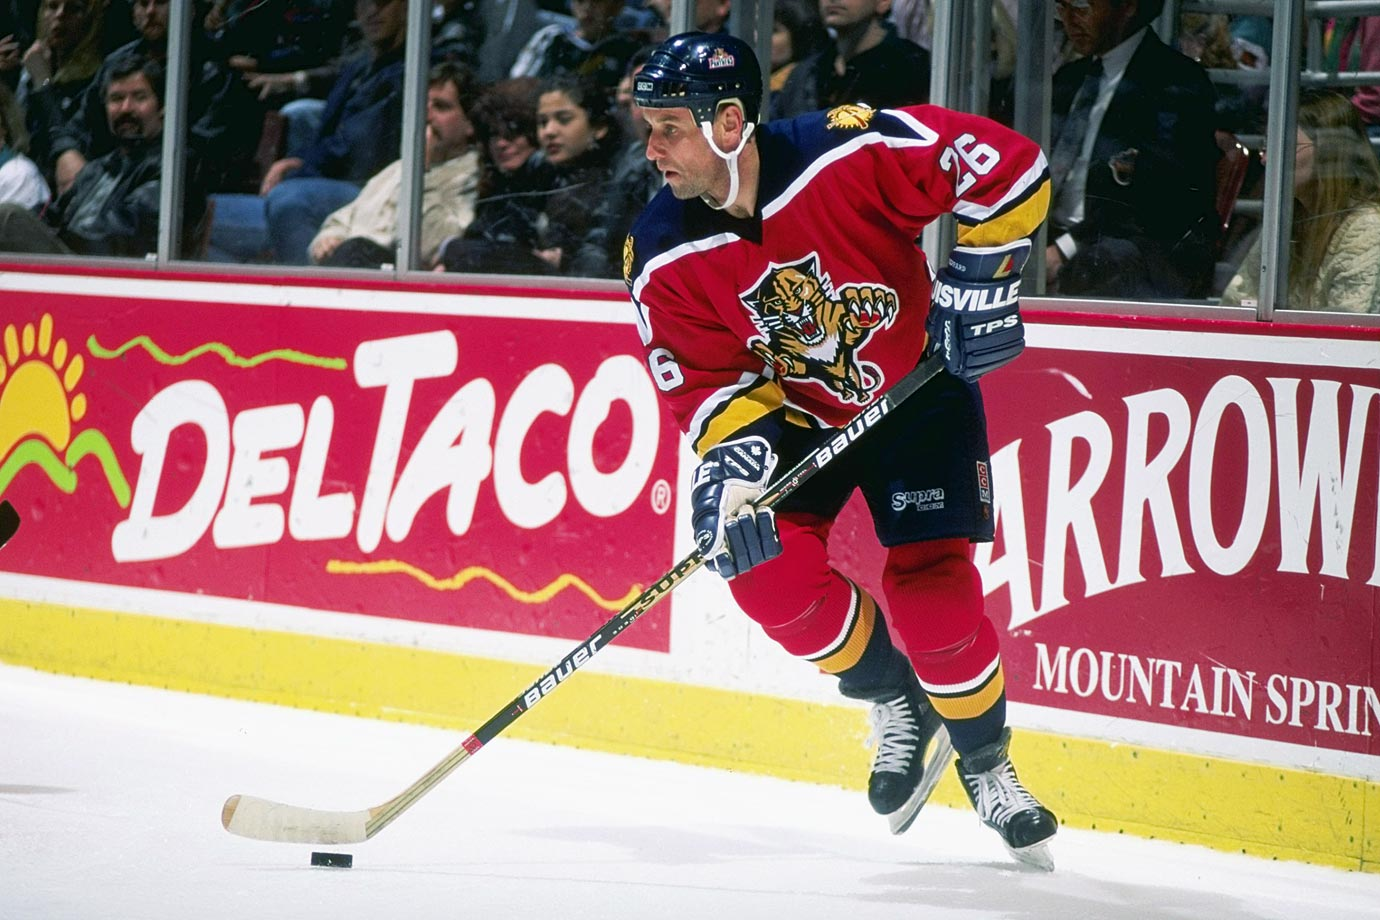 Poor skating didn't prevent Sheppard from scoring 52 goals for Detroit in 1993-94, and his scrappy skill sparked Florida's surprising run to the '96 Cup finals after he was acquired from San Jose on March 16. Sheppard scored eight goals and 16 points in Florida's 21 postseason games.